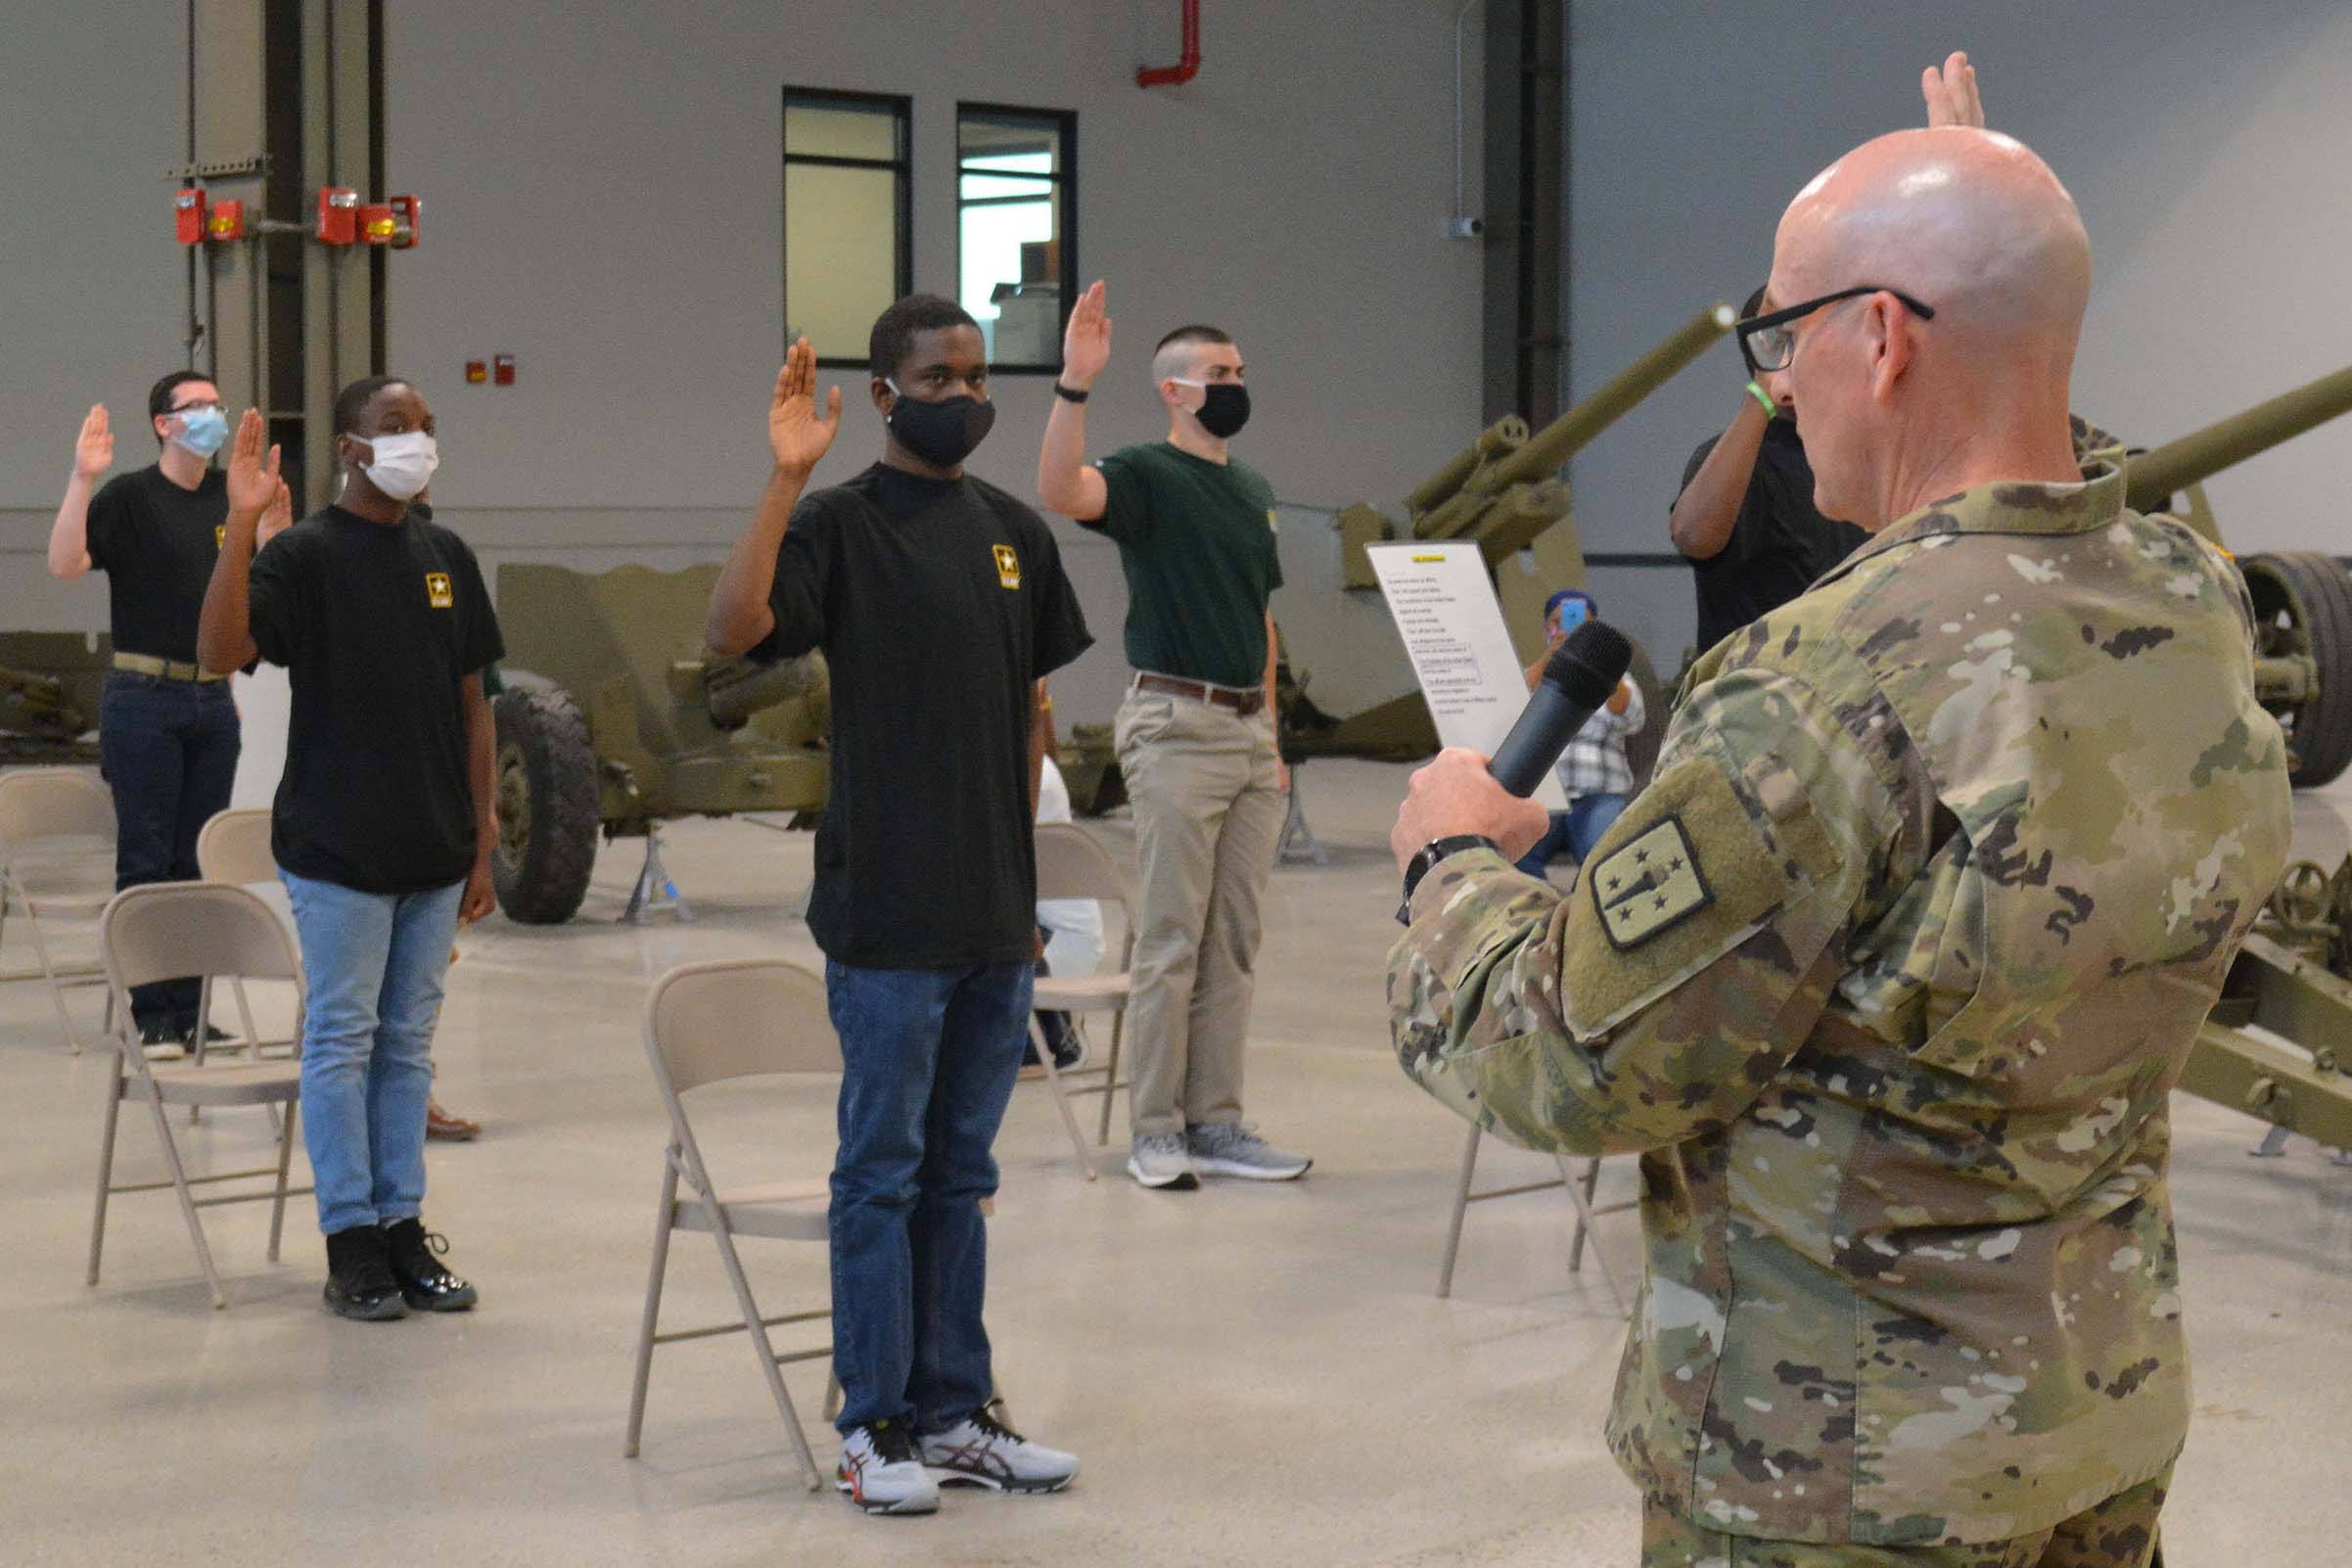 Caption: Army recruits take their Oaths of Enlistment at Fort Lee, Va. June 22., Credit:  Patrick Buffett / U.S. Army